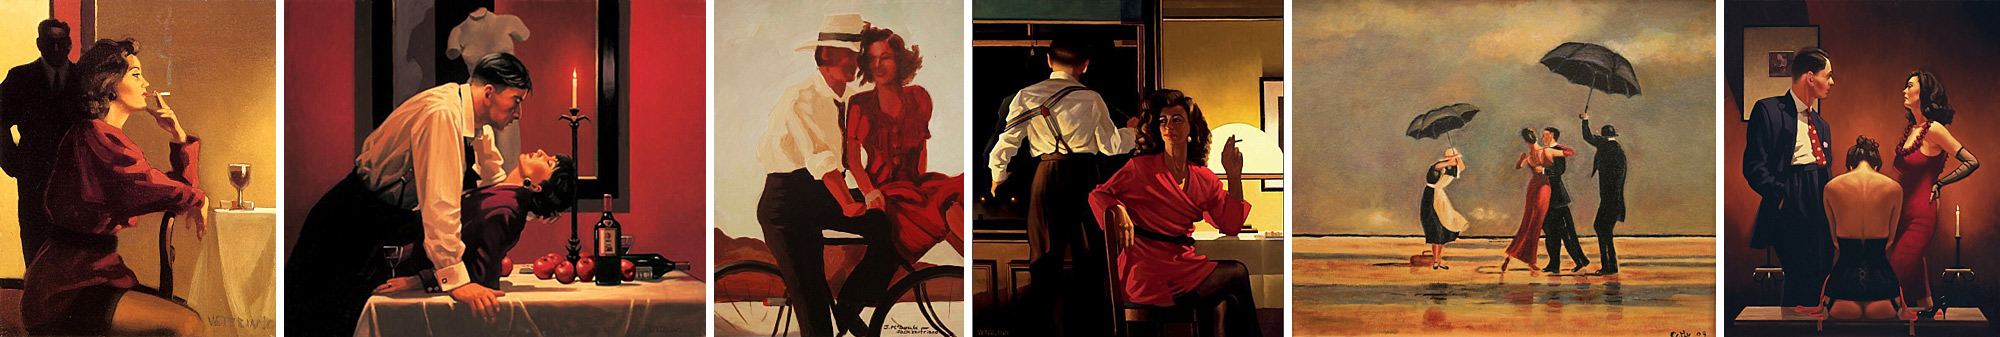 the paintings of Jack Vettriano